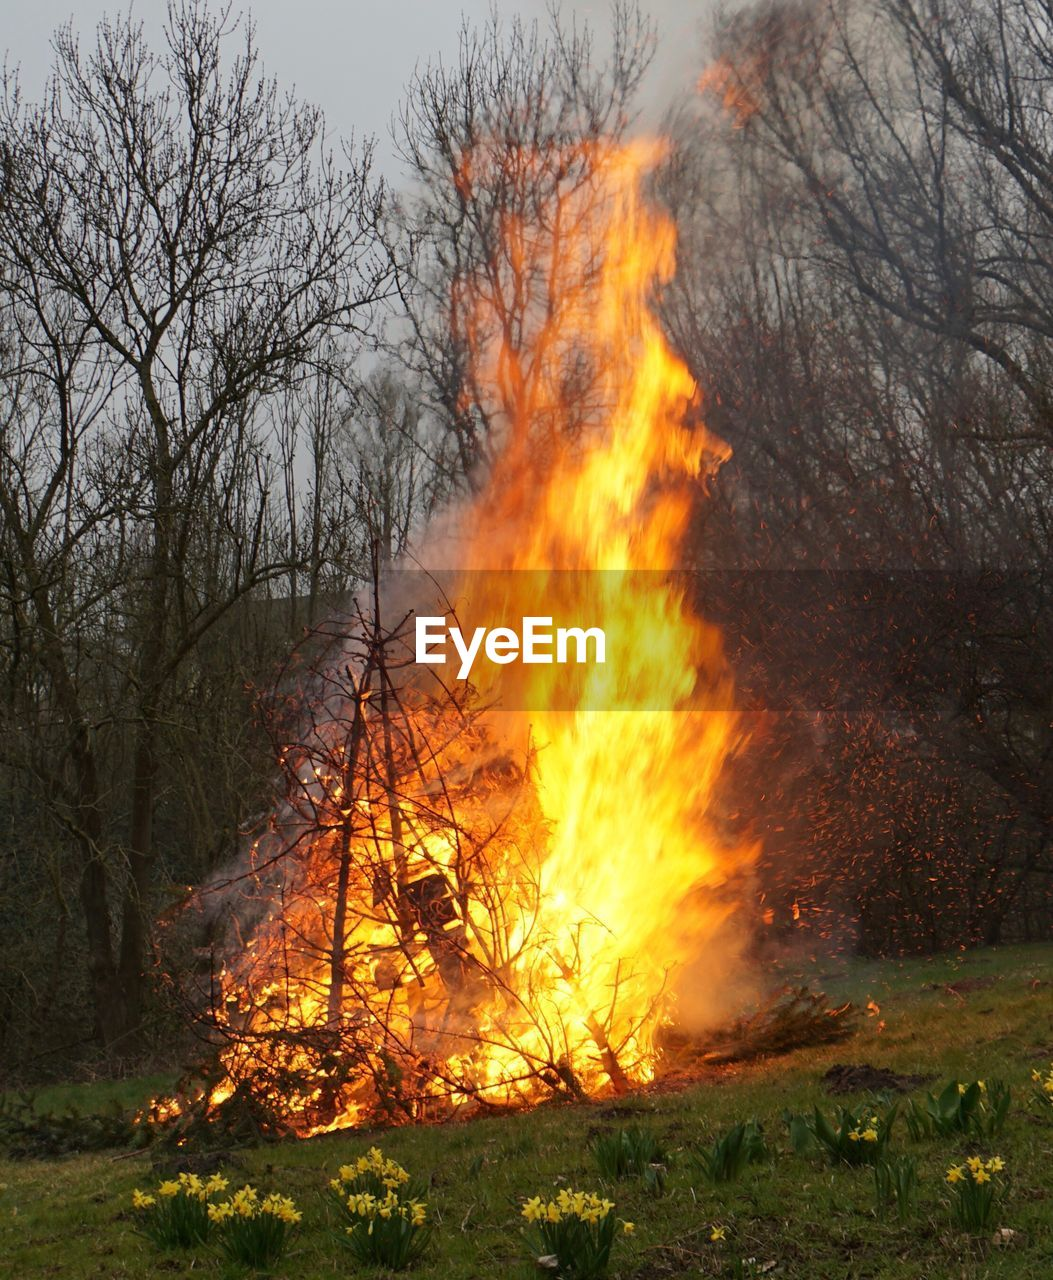 burning, fire, fire - natural phenomenon, flame, heat - temperature, tree, land, forest, nature, environmental issues, orange color, plant, forest fire, smoke - physical structure, environmental damage, environment, sign, bare tree, no people, warning sign, outdoors, woodland, pollution, air pollution